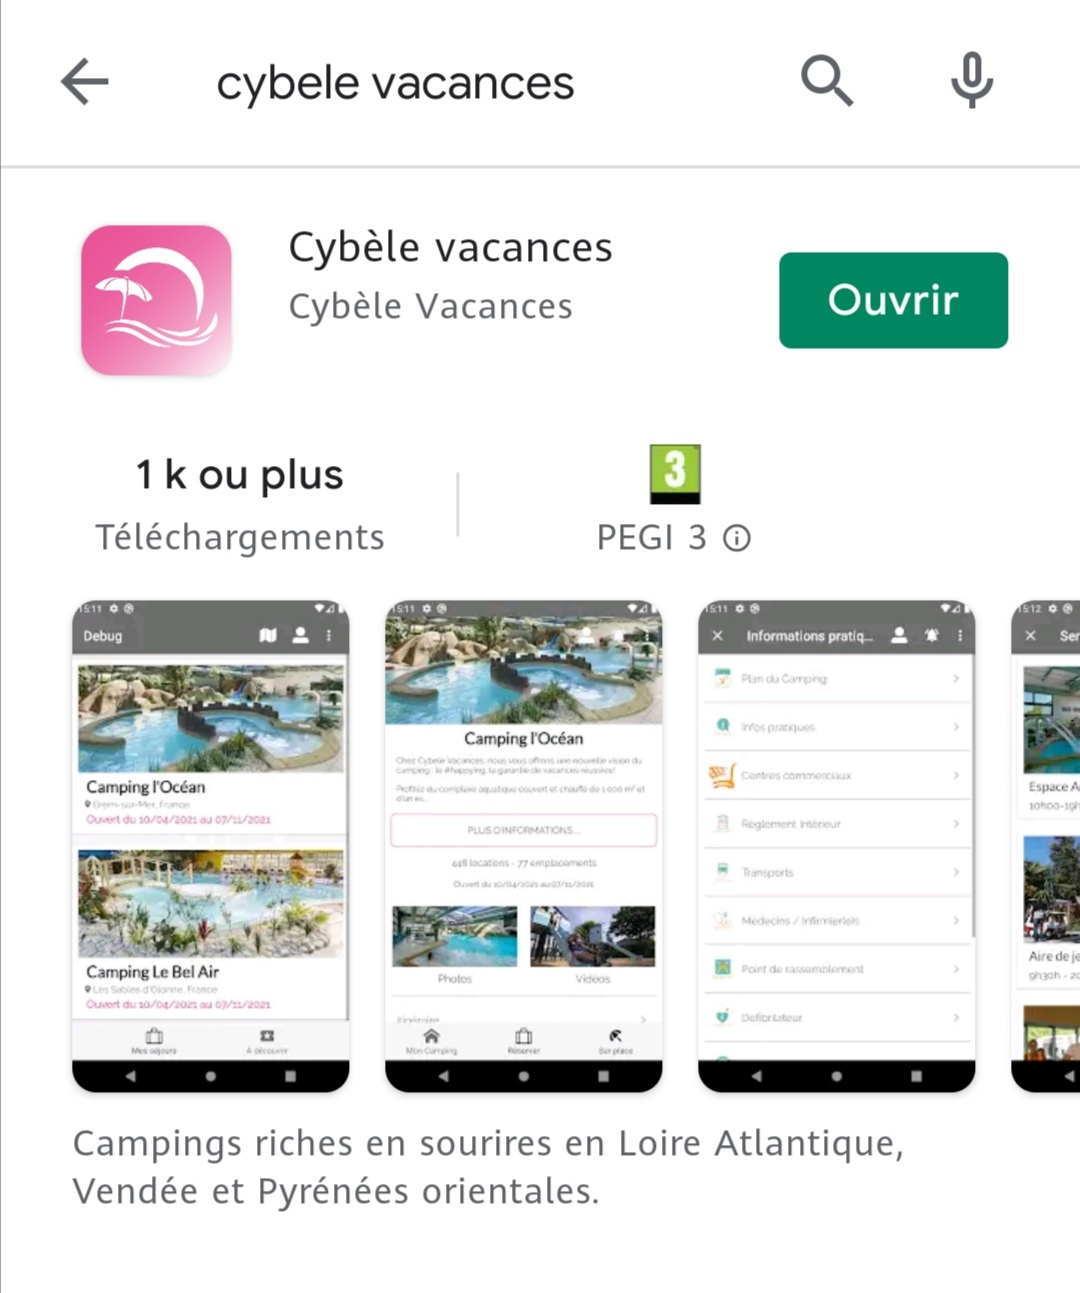 campings cybele vacances